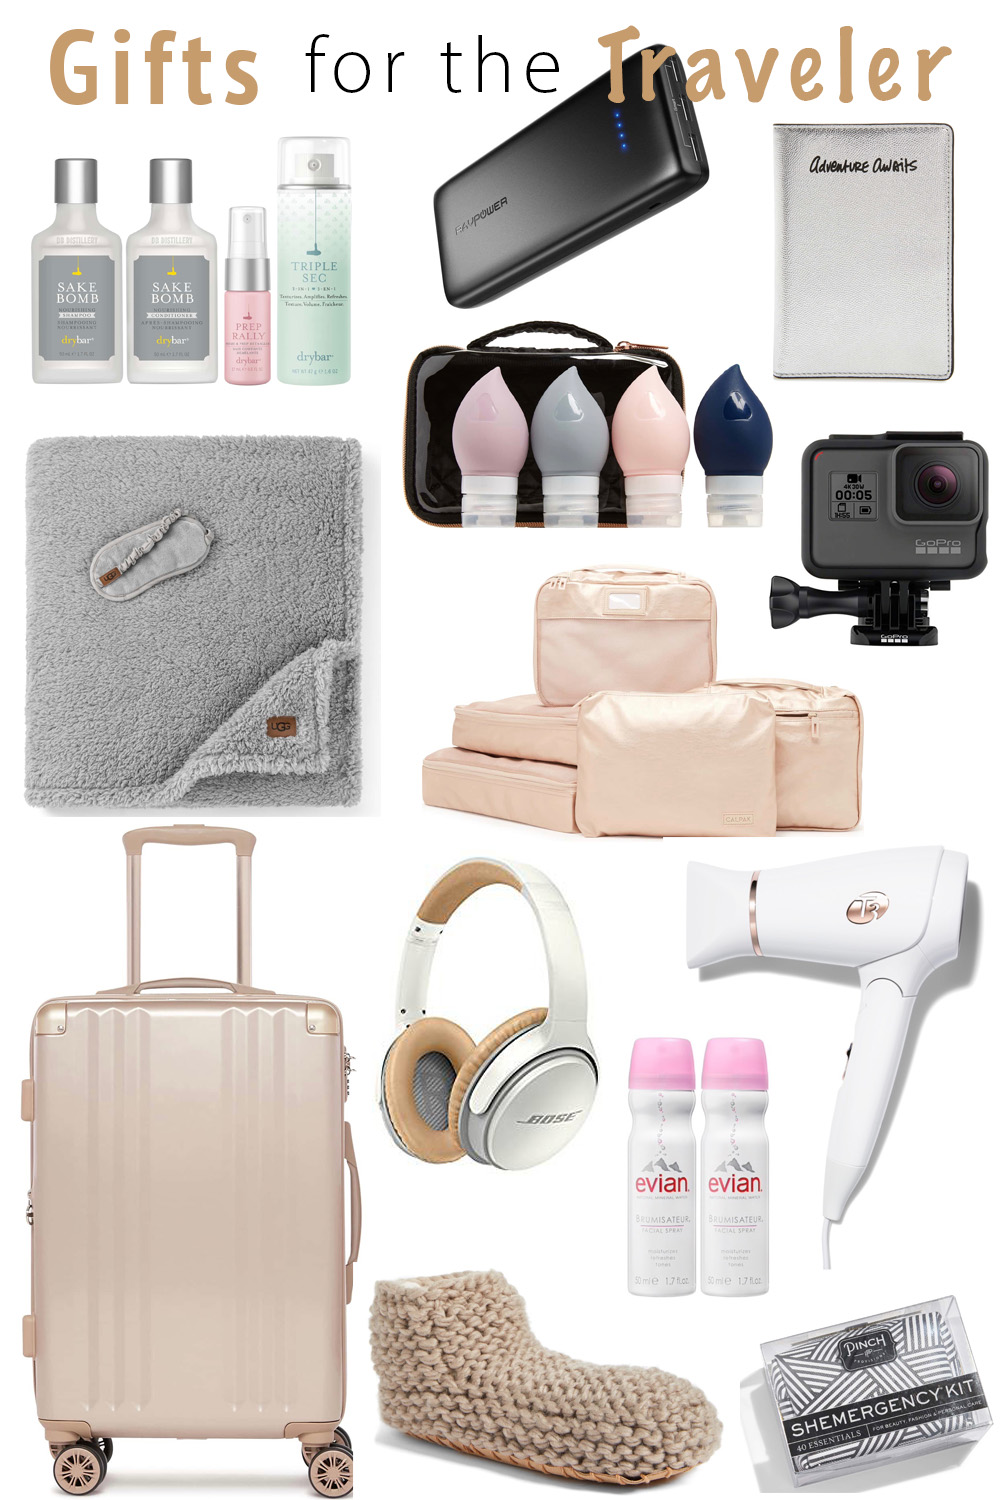 Erin Elizabeth of Wink and a Twirl shares the perfect gifts for the traveler in her Gift Guide for the Traveler